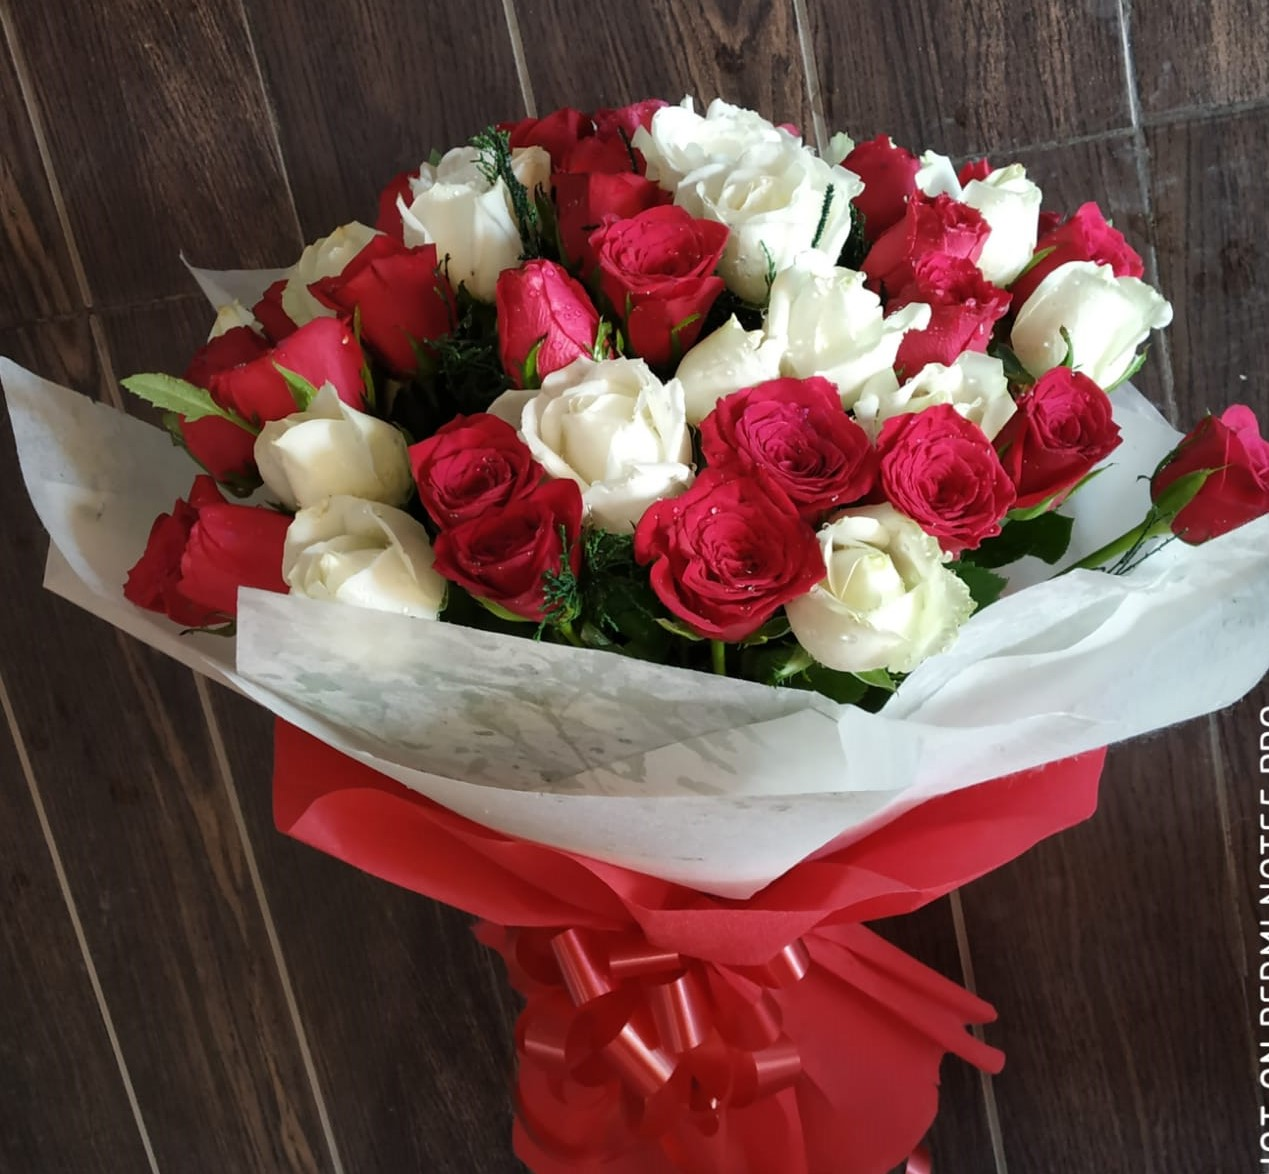 send flower Anand Parbat DelhiRed & White Roses in Duble Layer Packing